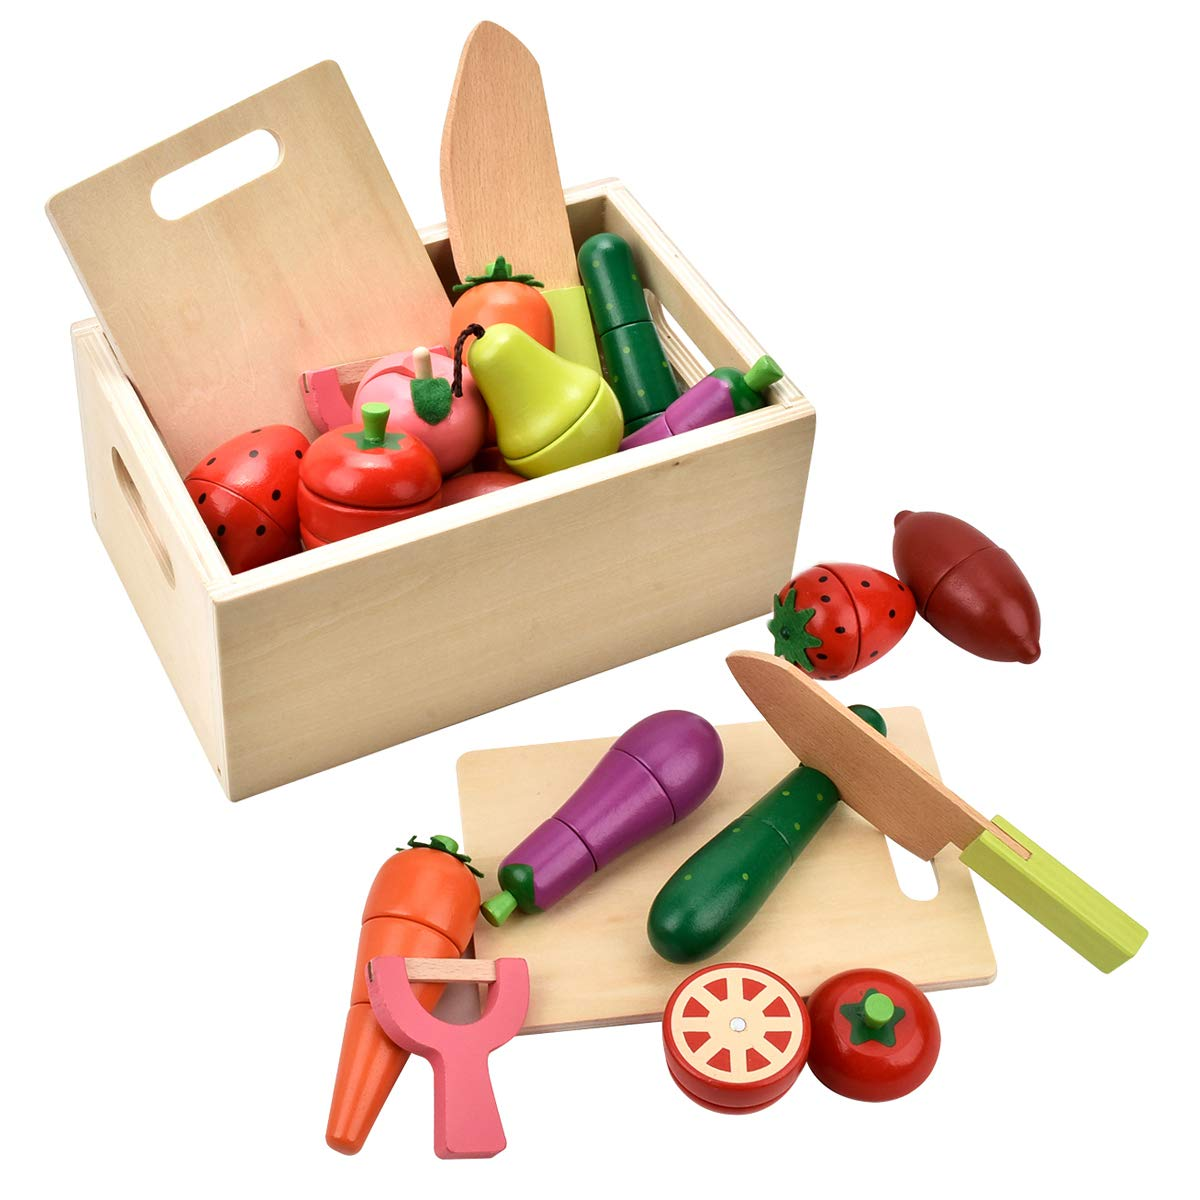 CARLORBO Play Food for Kids Pretend Play Kitchen - WoodenToys Vegetables and Fruit for 2 Year Old Boys Girls Early Educational Development